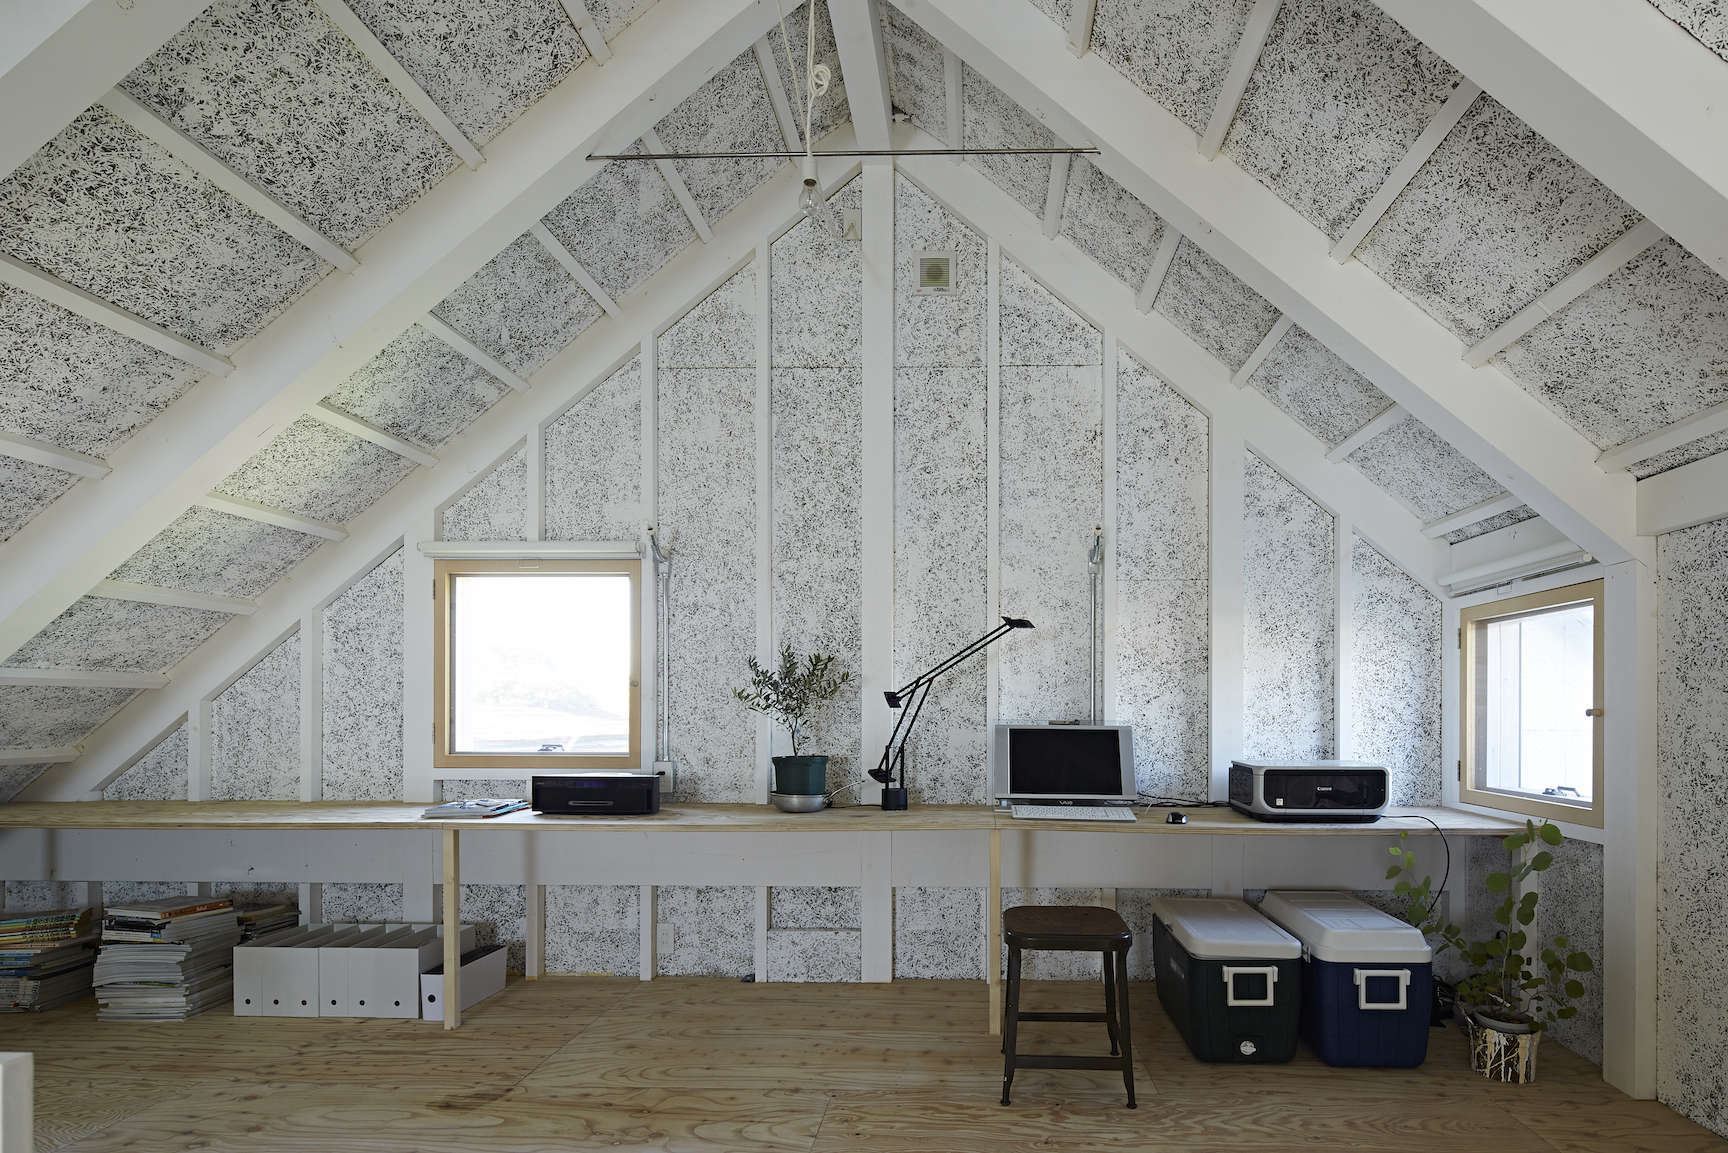 the home office at sabi, a surfers' house in chiba, japan, by no. 555 architect 14